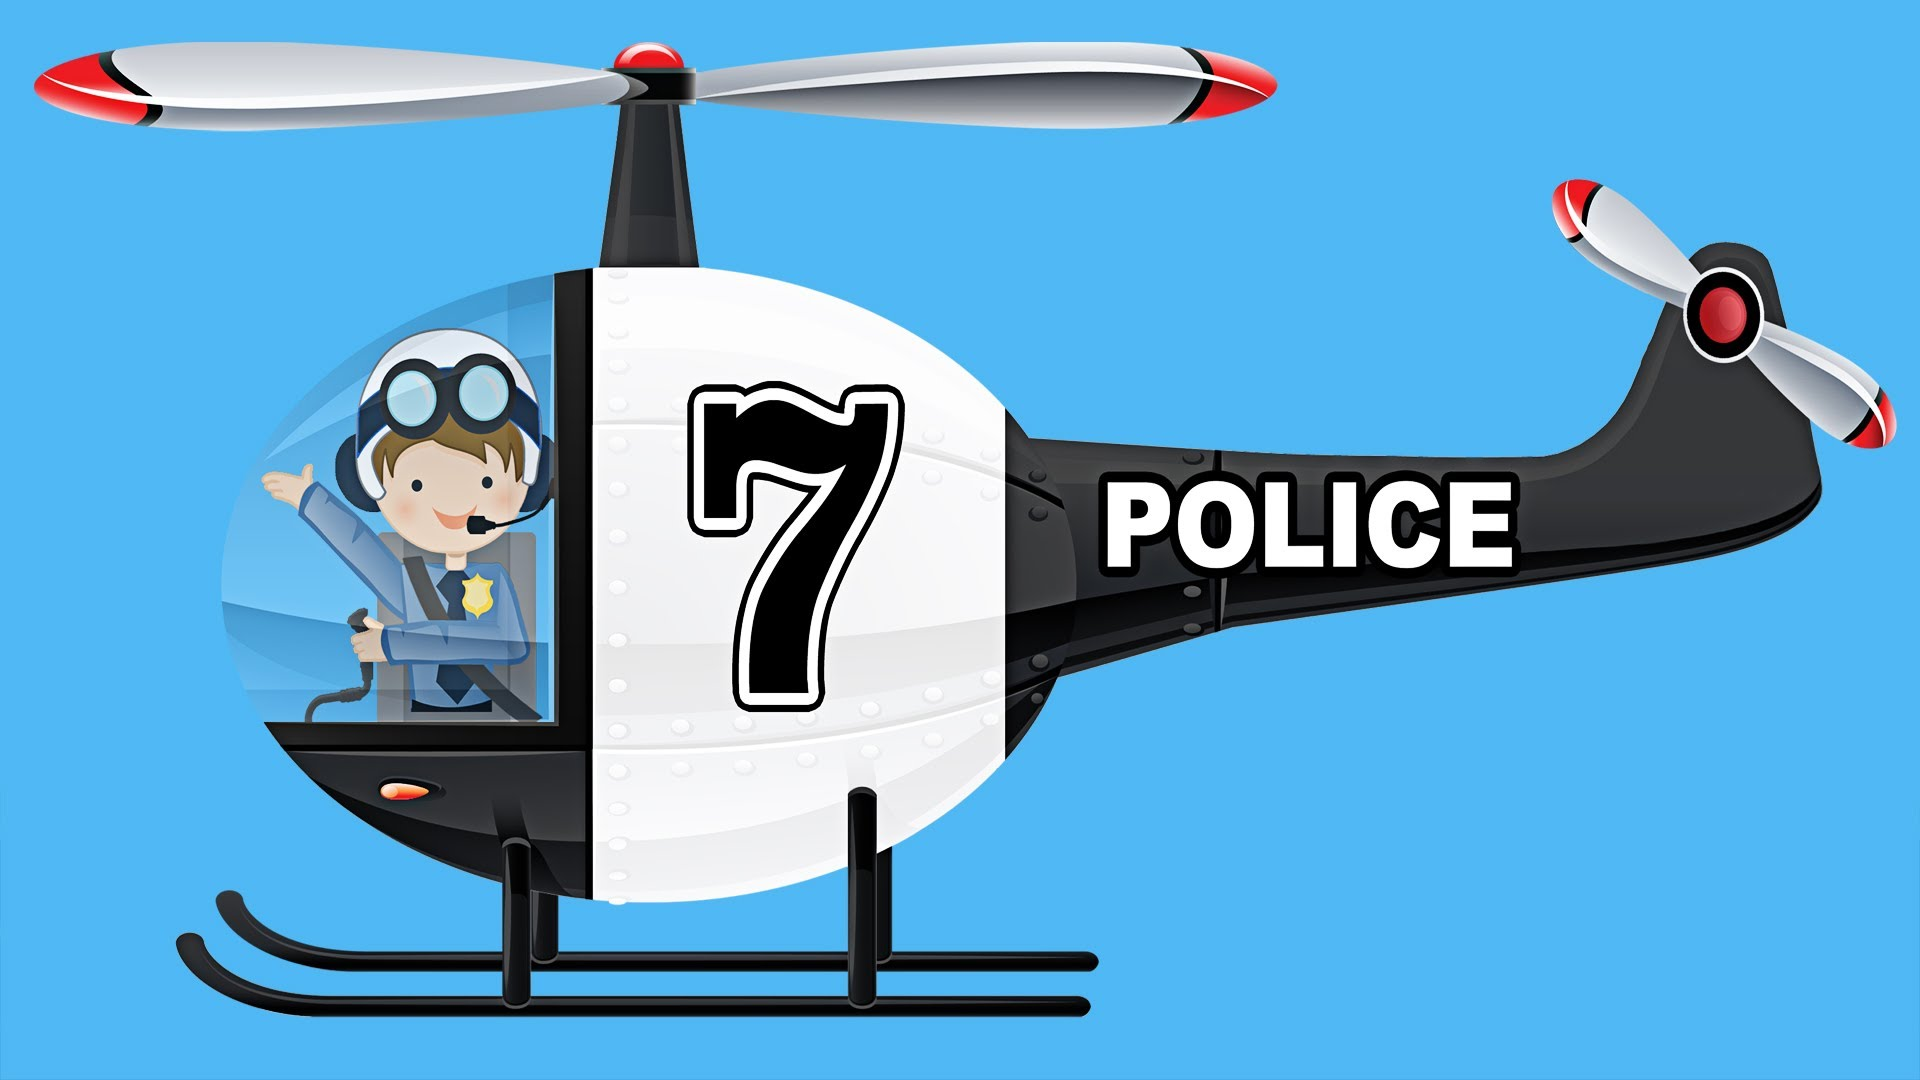 Helicopter clipart green helicopter. Police helicopters teaching numbers